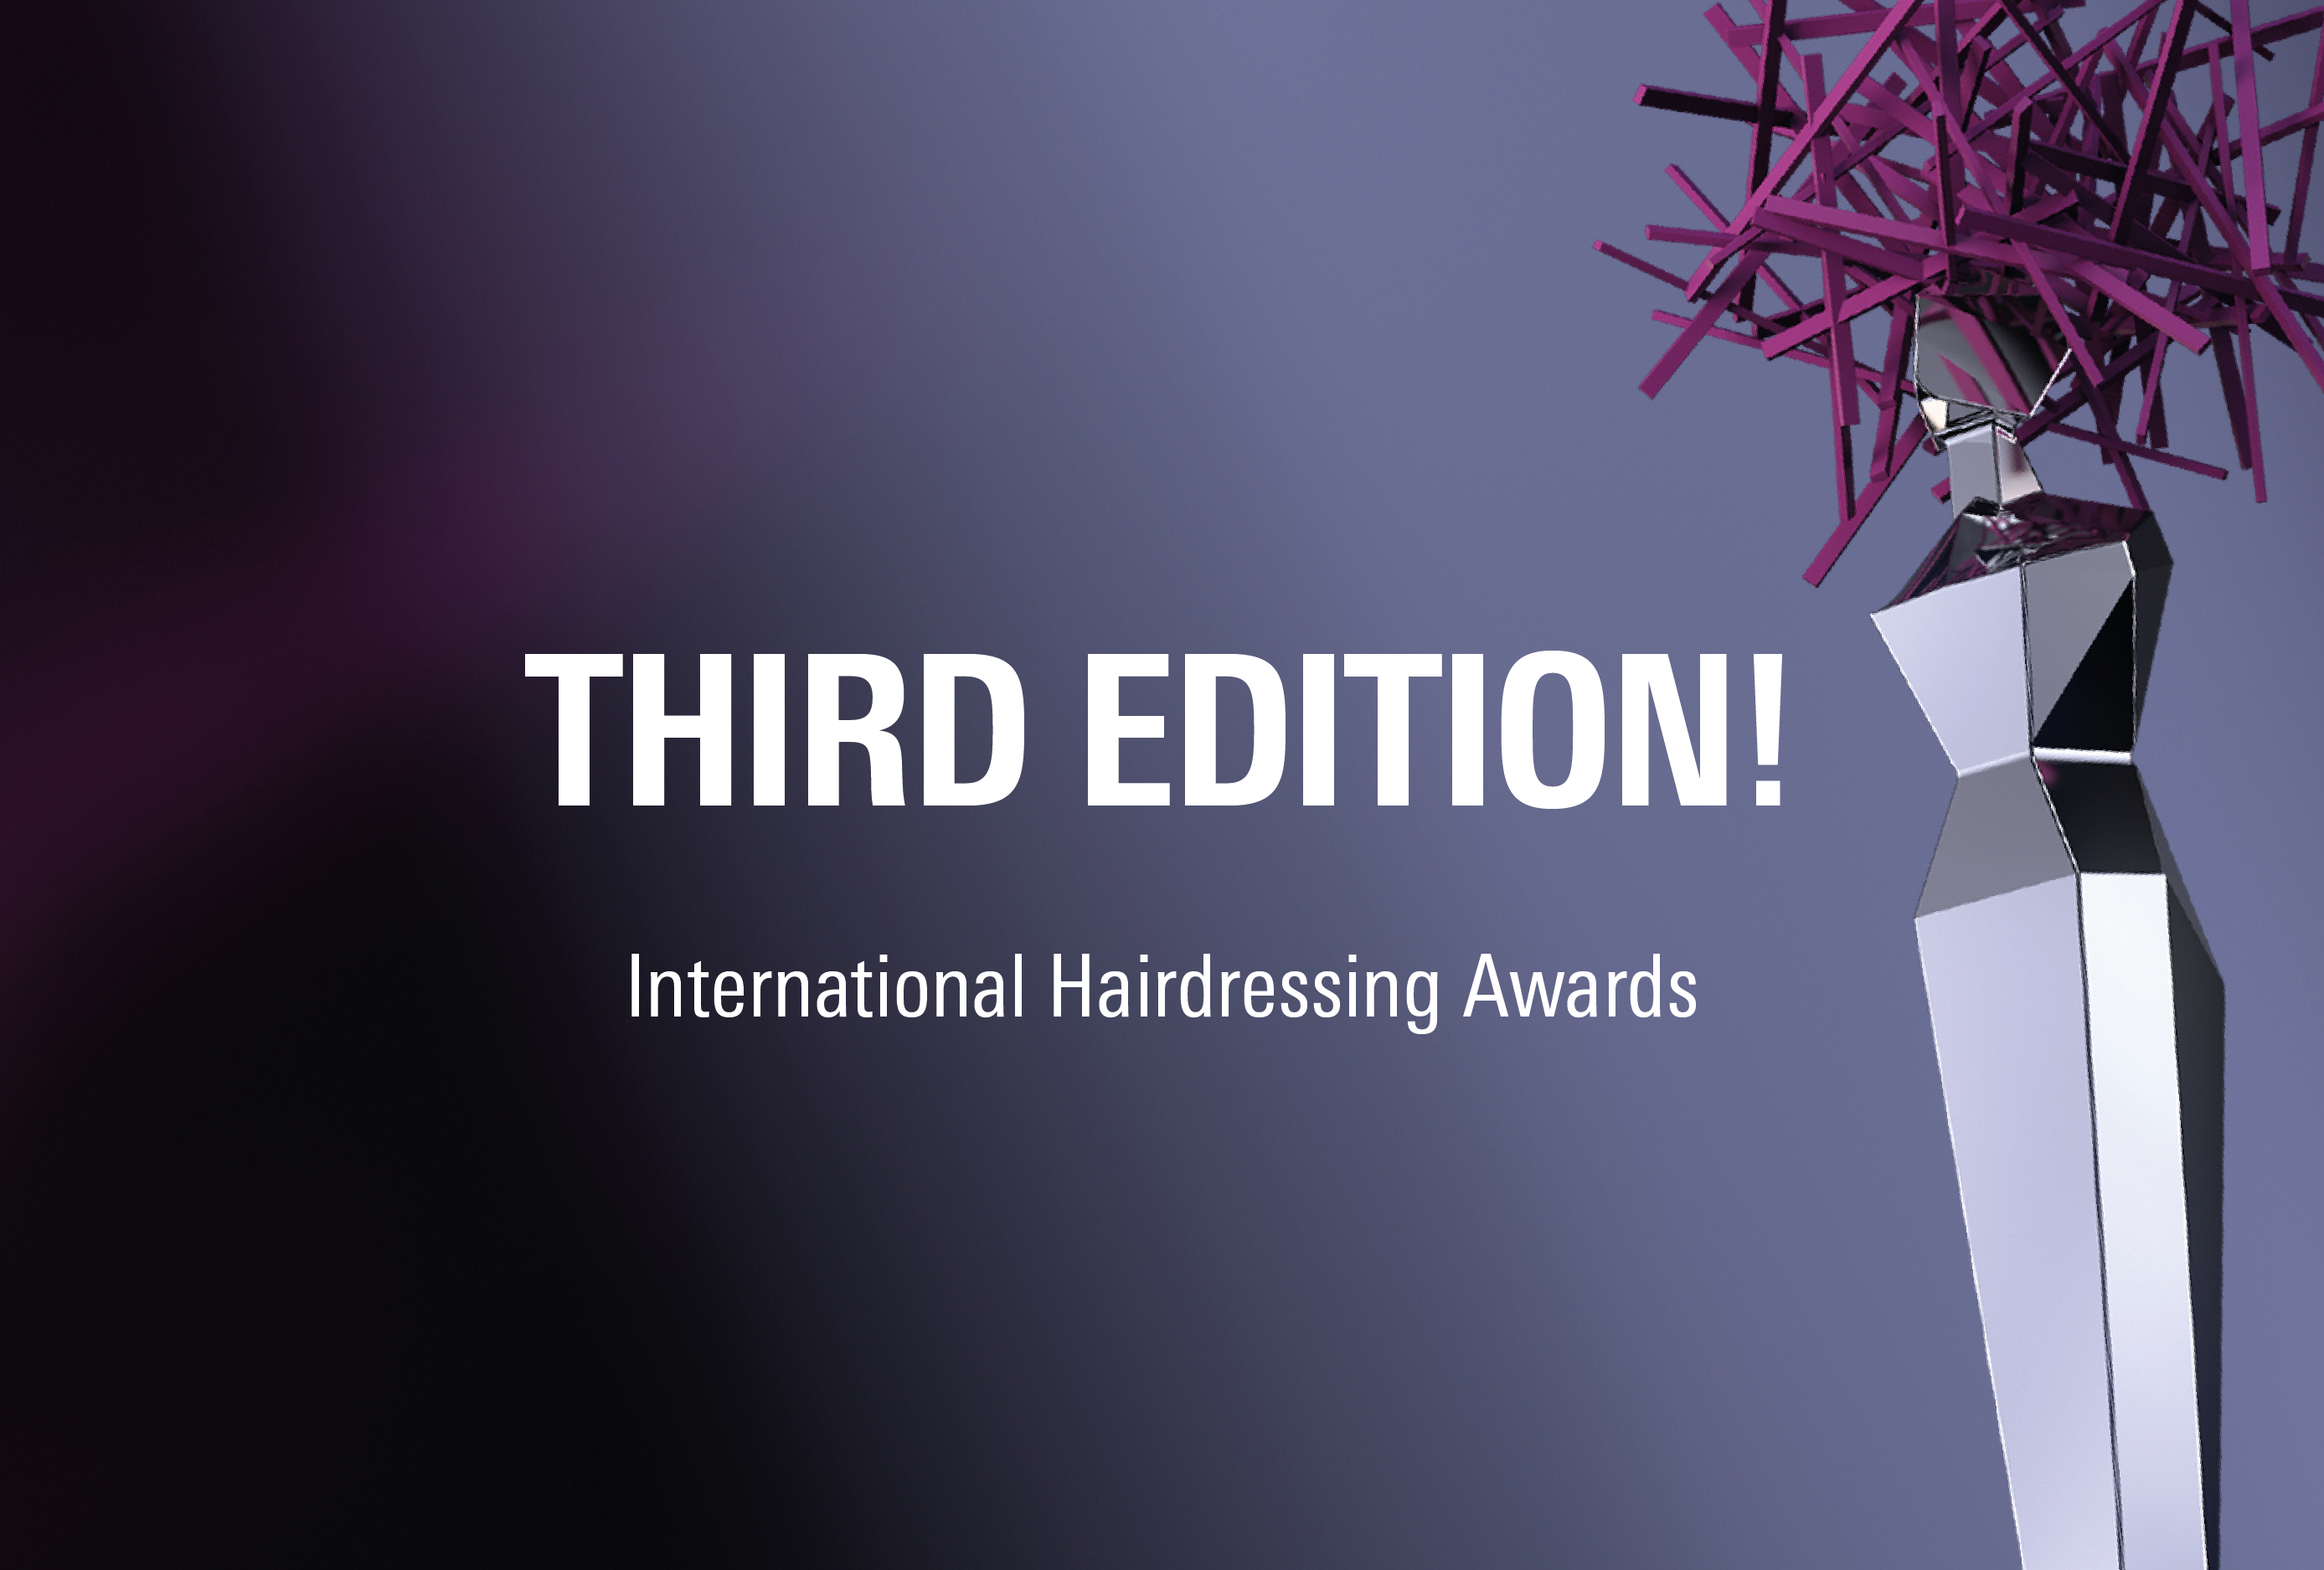 The International Hairdressing Awards announce their third edition with important news